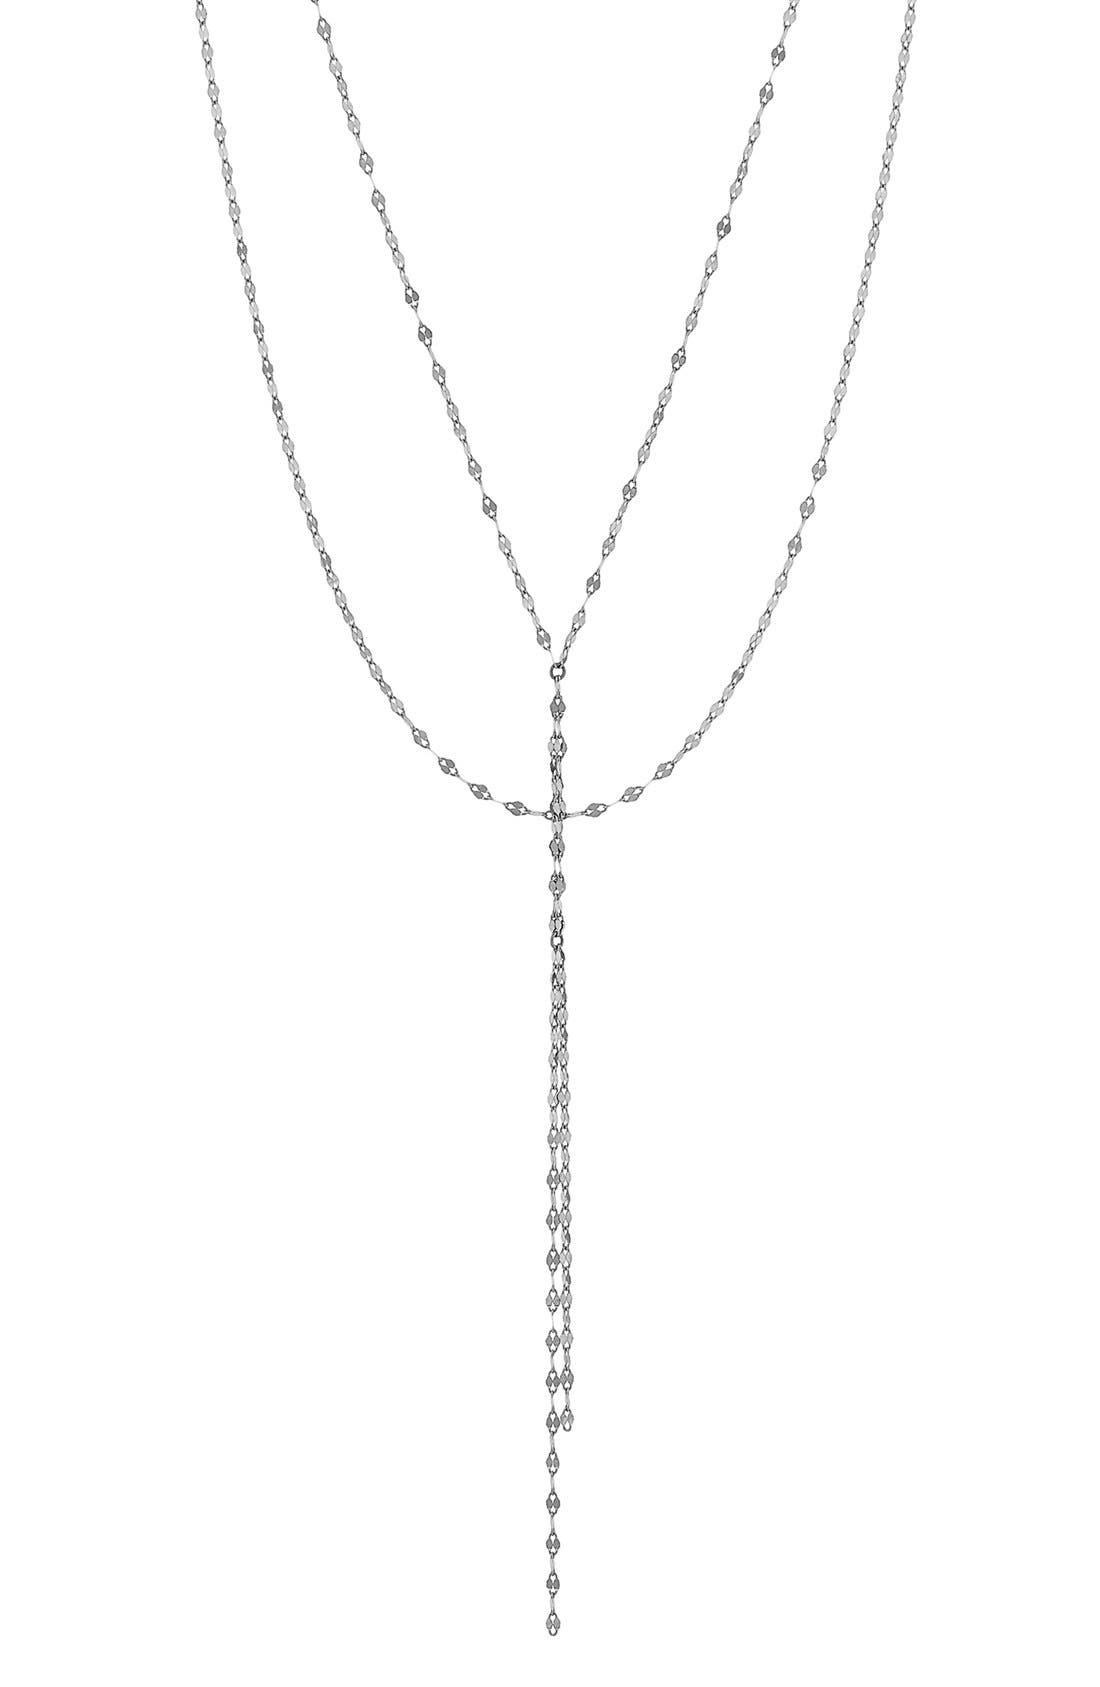 Main Image - Lana Jewelry 'Blake' Lariat Necklace